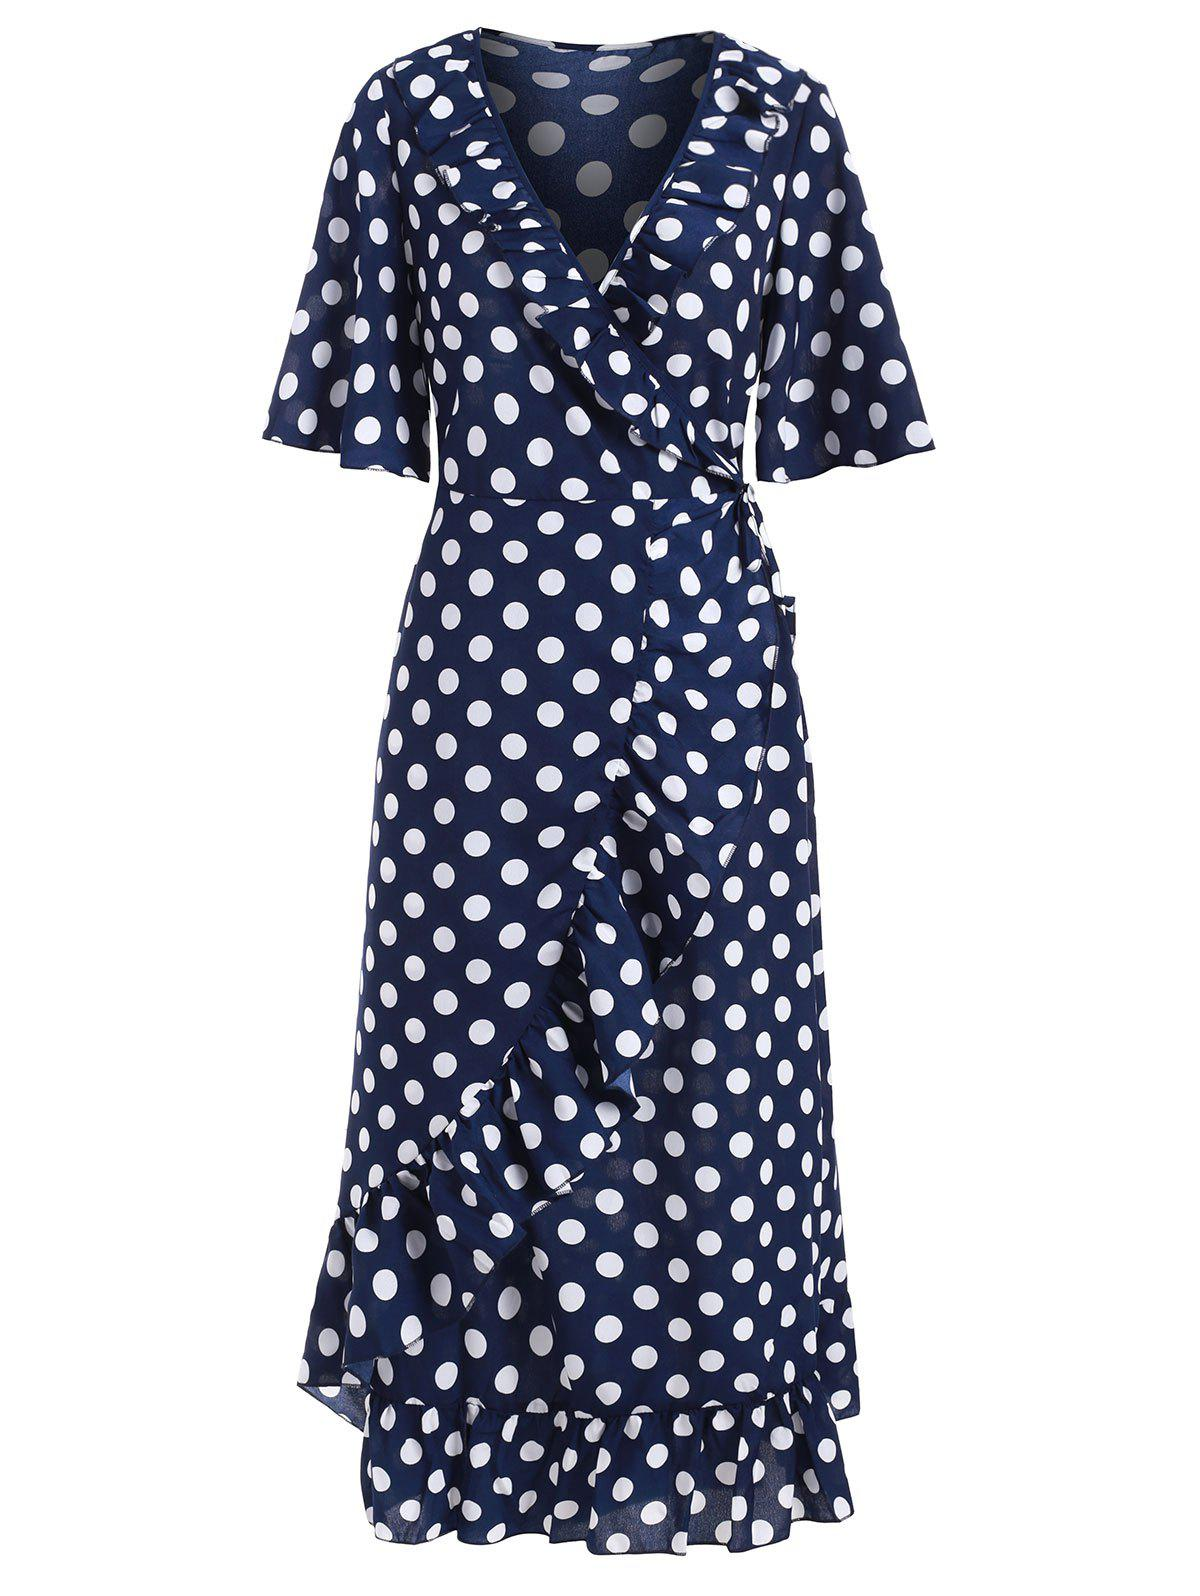 Ruffle Polka Dot Midi Wrap Dress - DEEP BLUE S